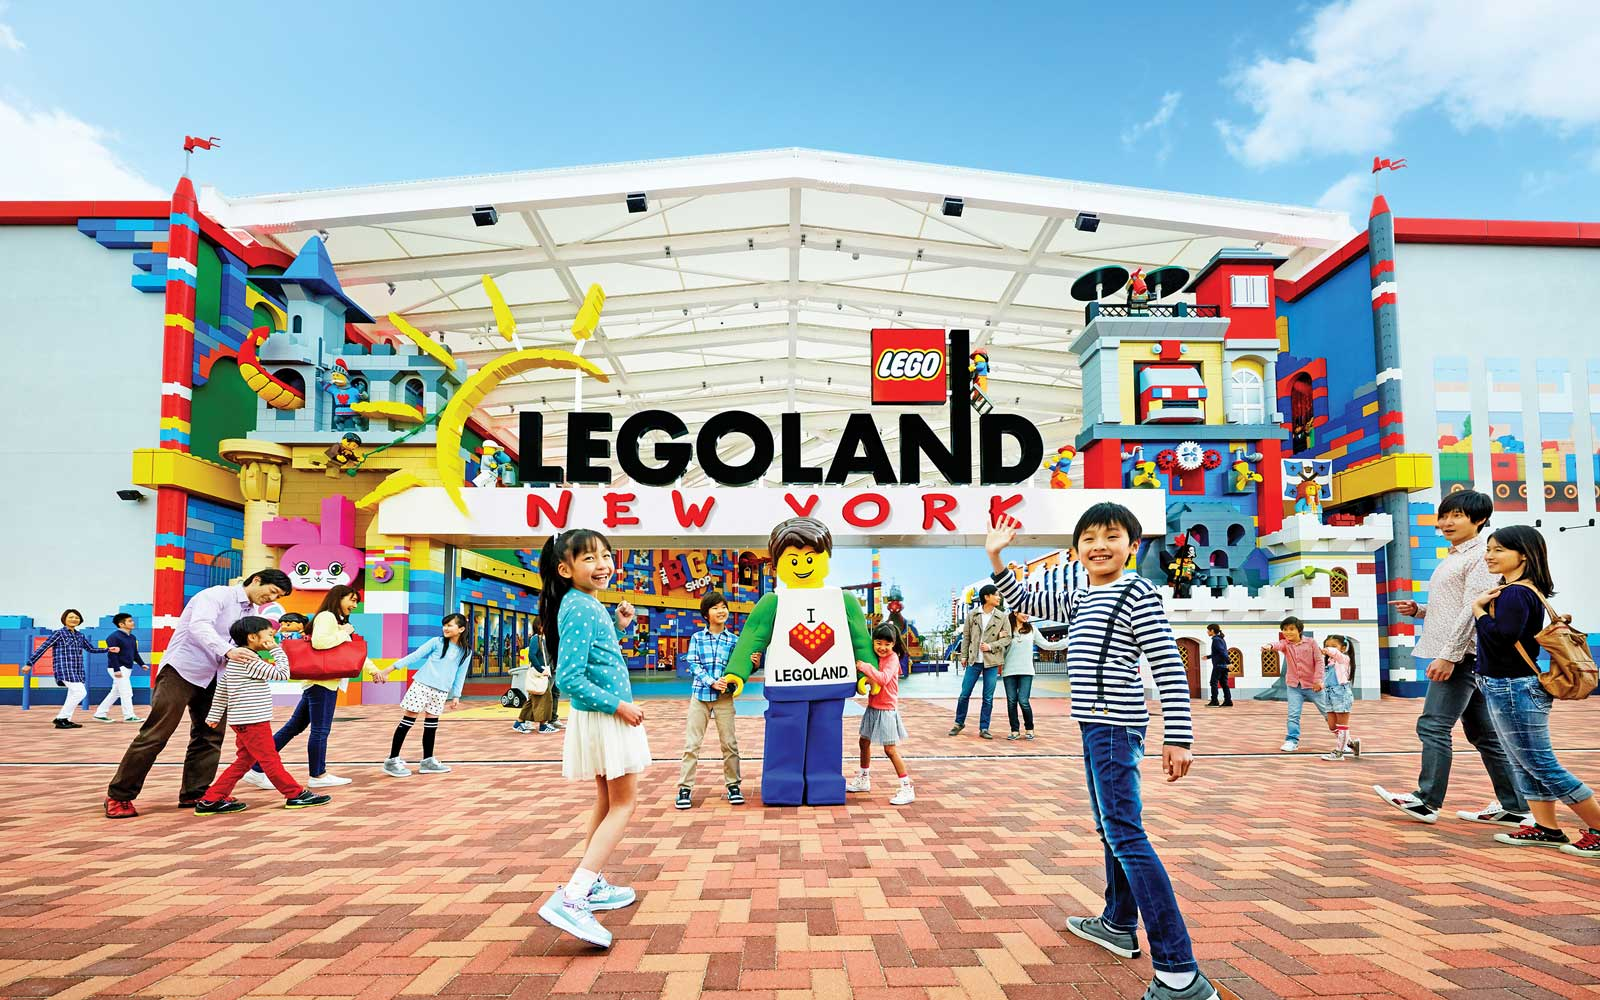 Legoland Resort New York